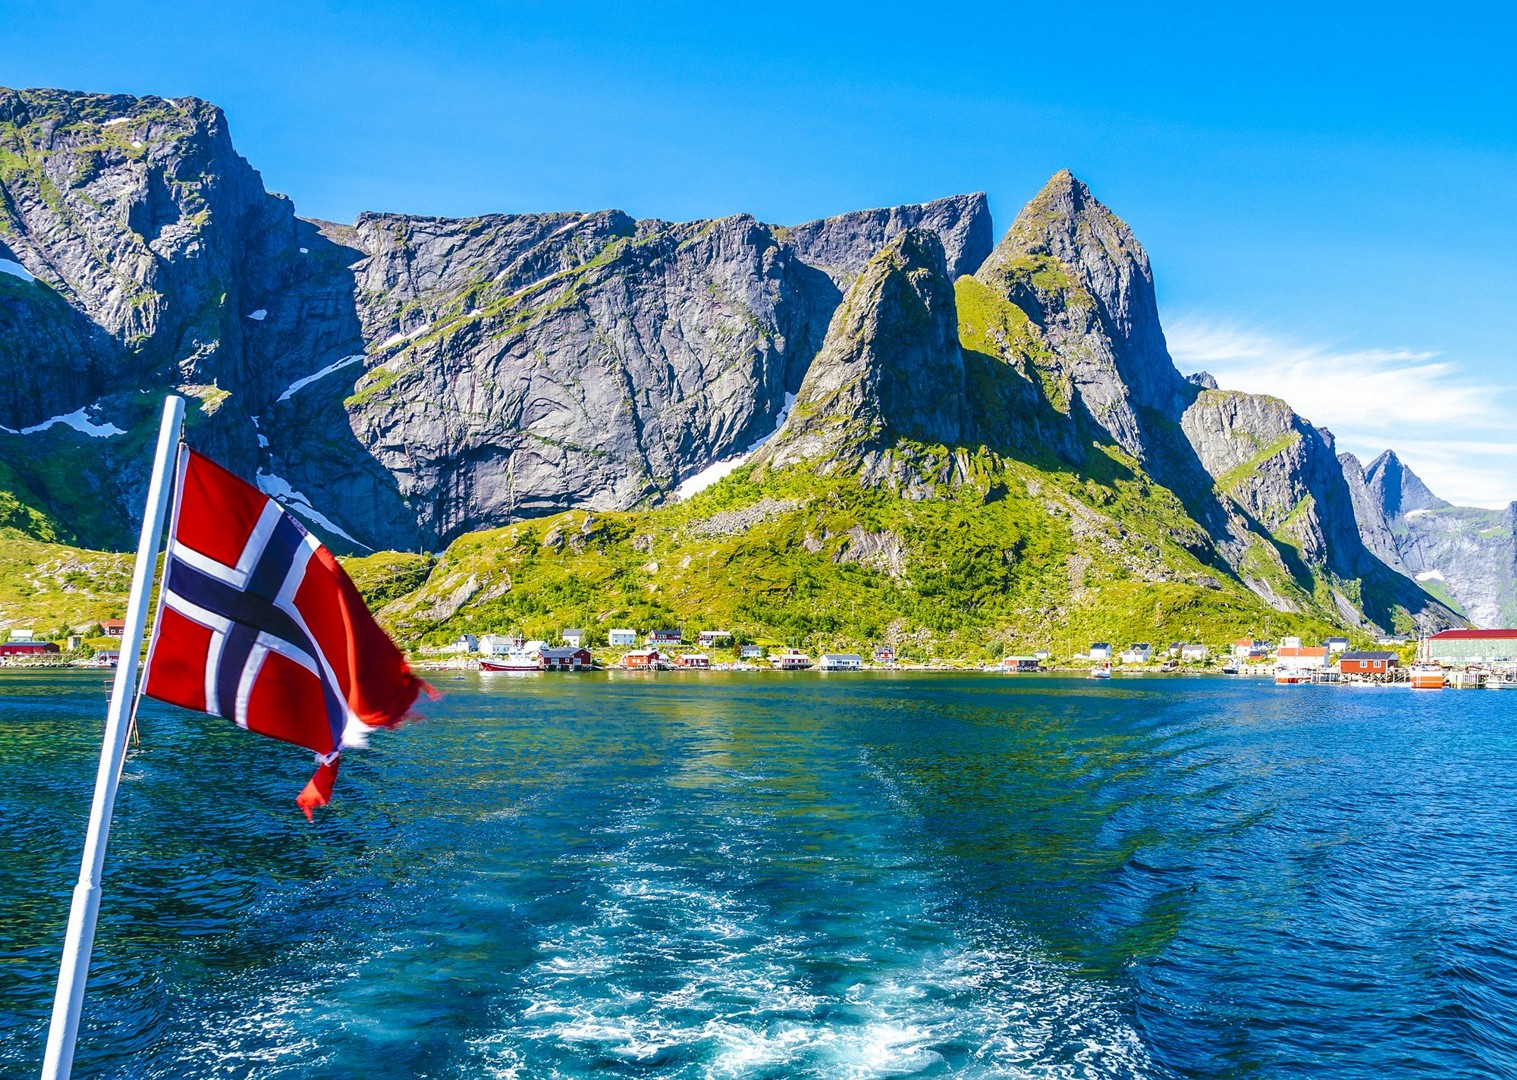 lofoten-islands-norway-flag-local-culture-sea-boat-trp-cycling-tour.jpg - Norway - Lofoten Islands - Self-Guided Leisure Cycling Holiday - Leisure Cycling